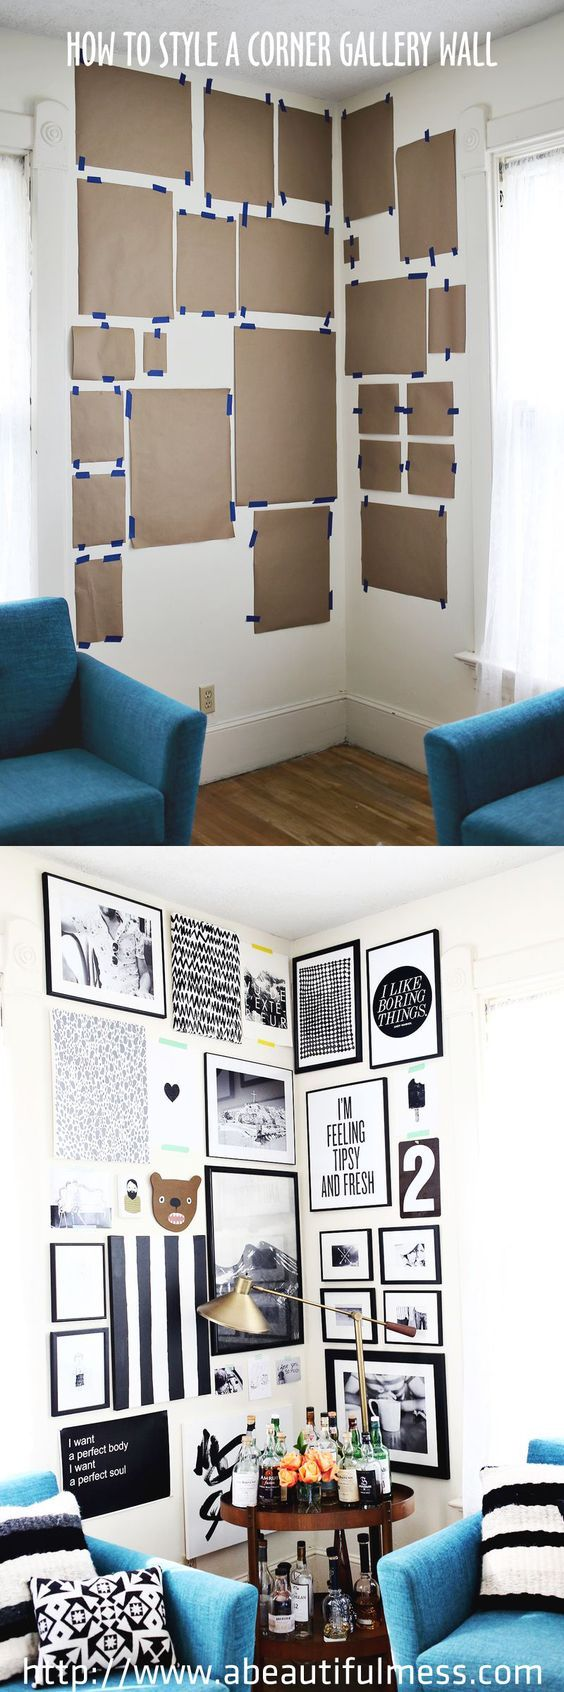 Best 25 framed wall art ideas on pinterest bedroom art bedroom how to style a corner gallery wall amipublicfo Images